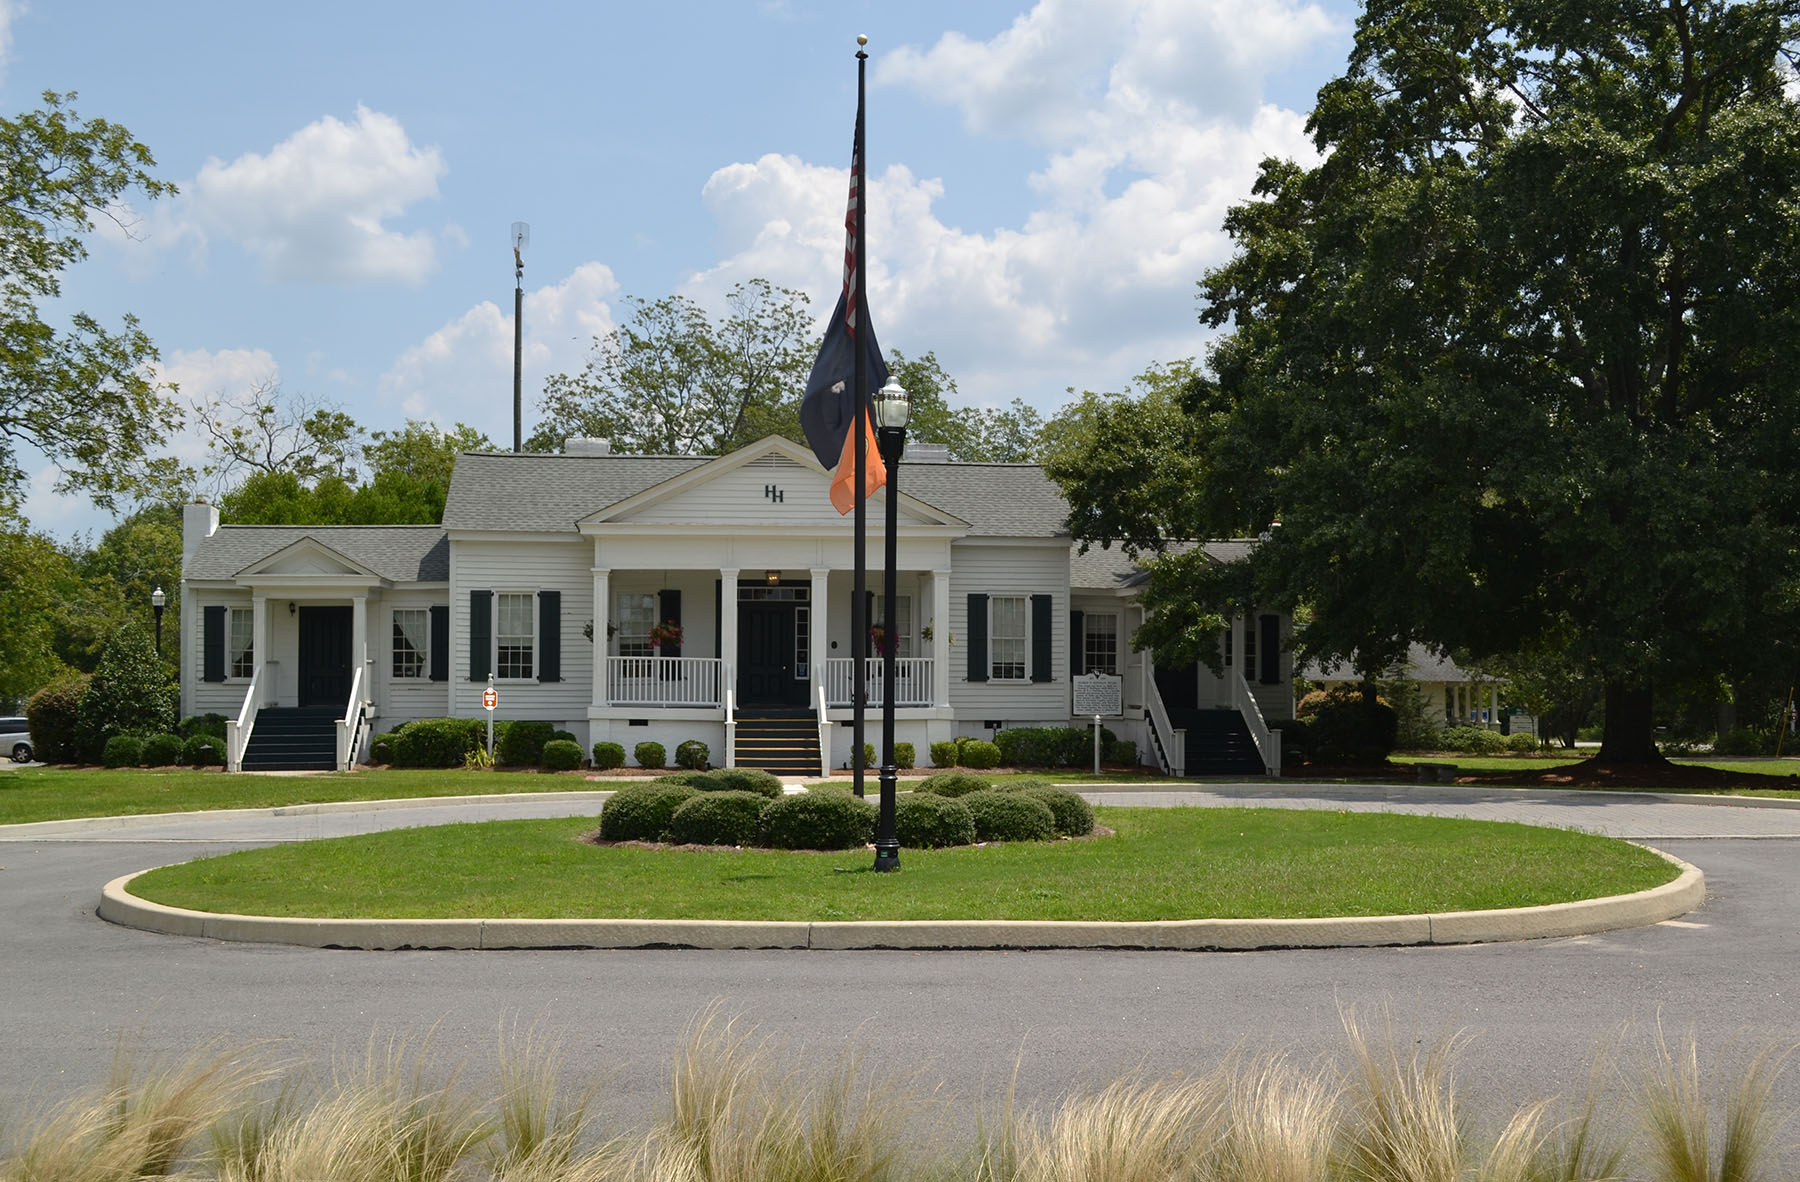 Historic Hoffman House/Blythewood Town Hall 2014.  Photo by Jim McLean